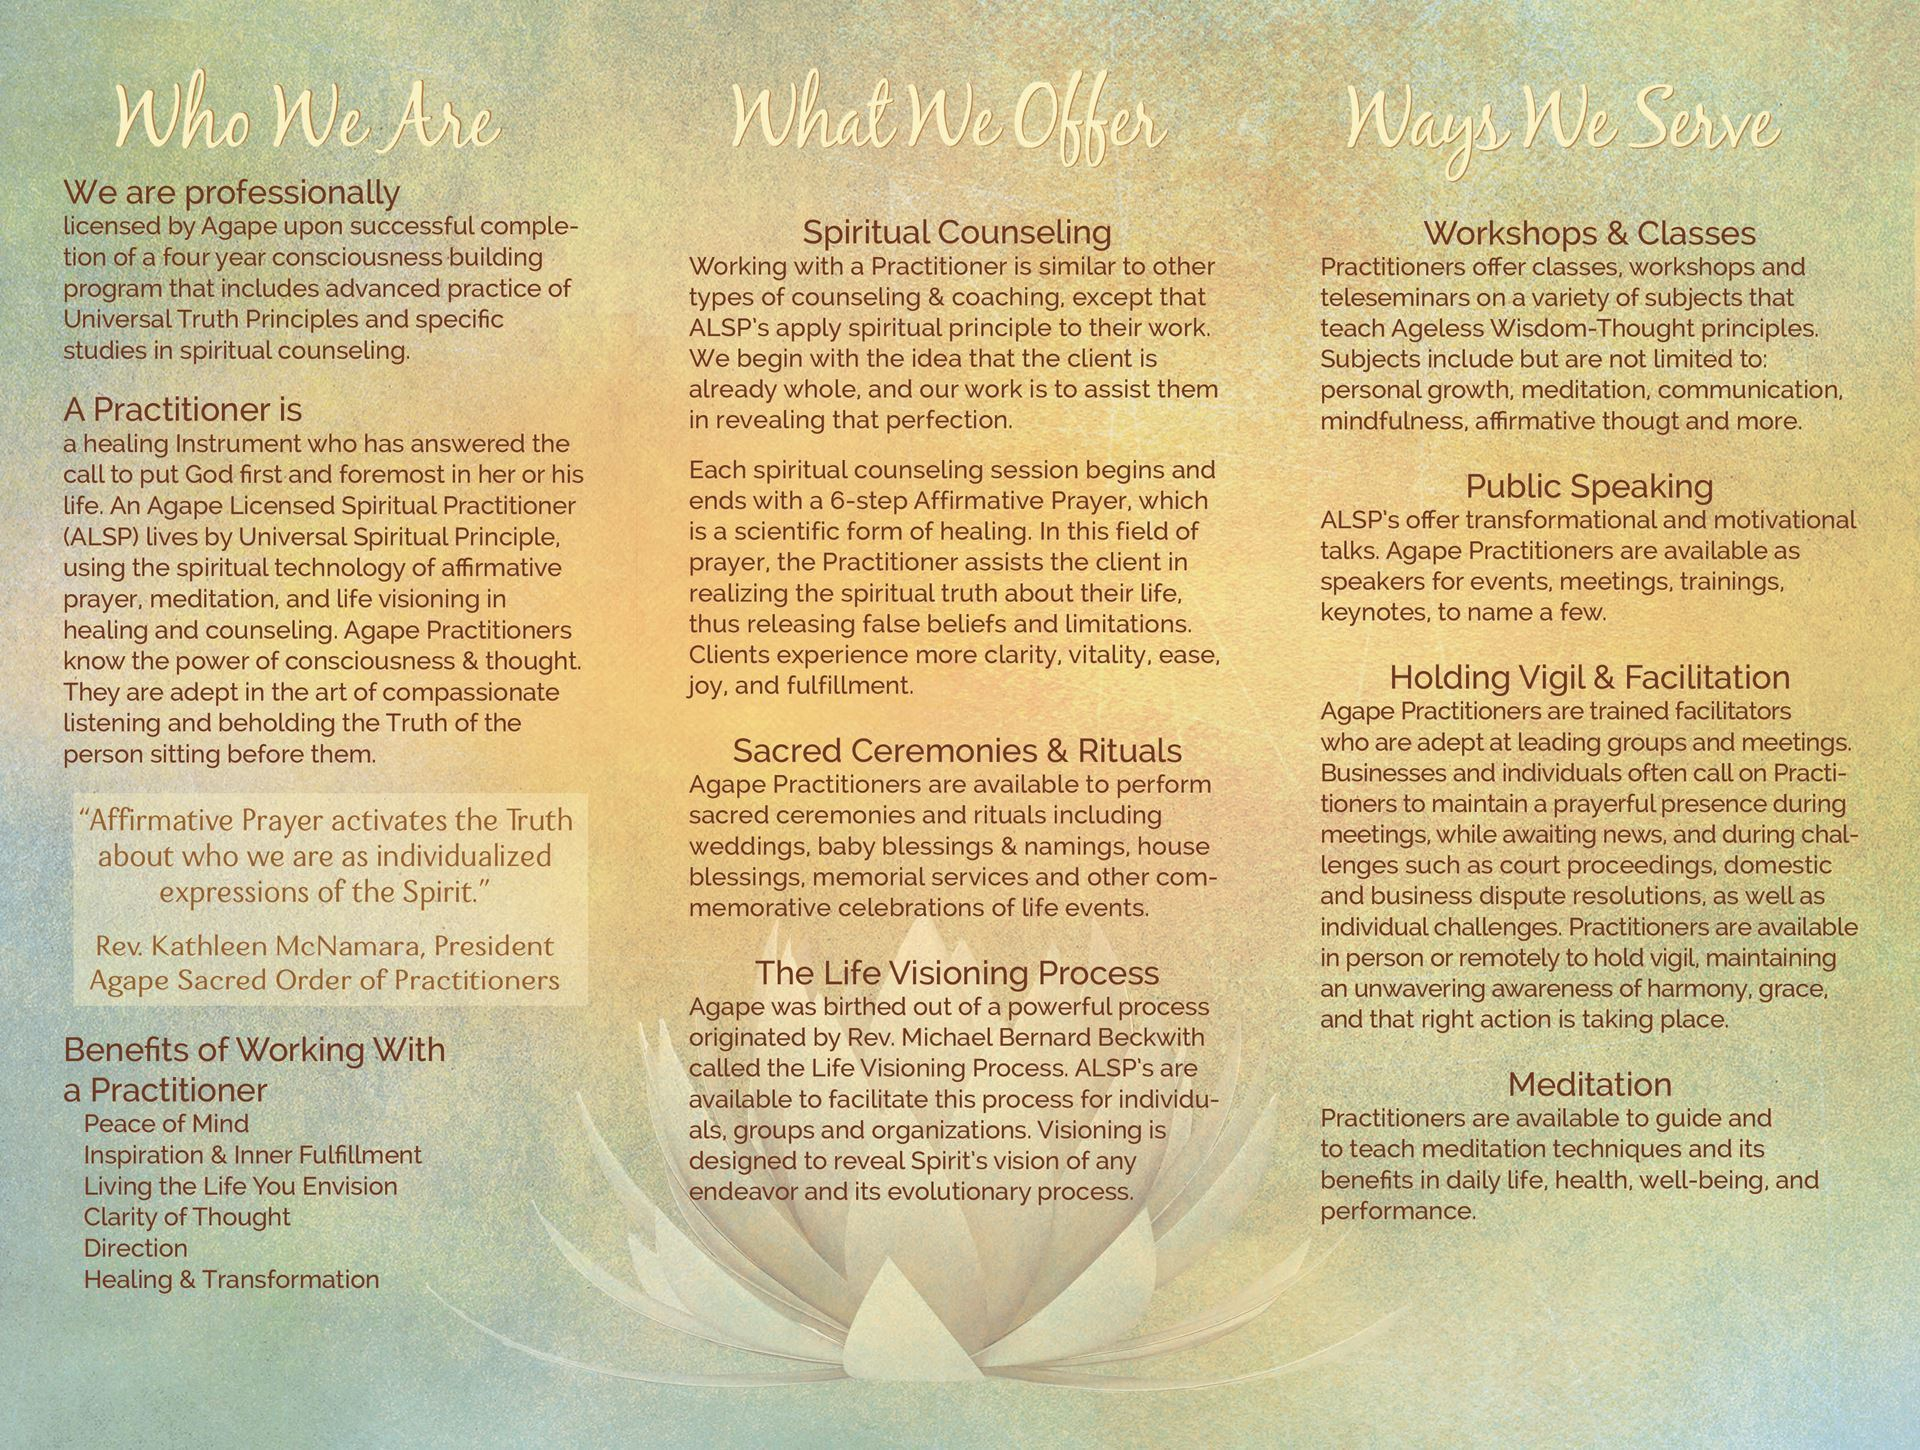 Agape Practitioners - Who We Are